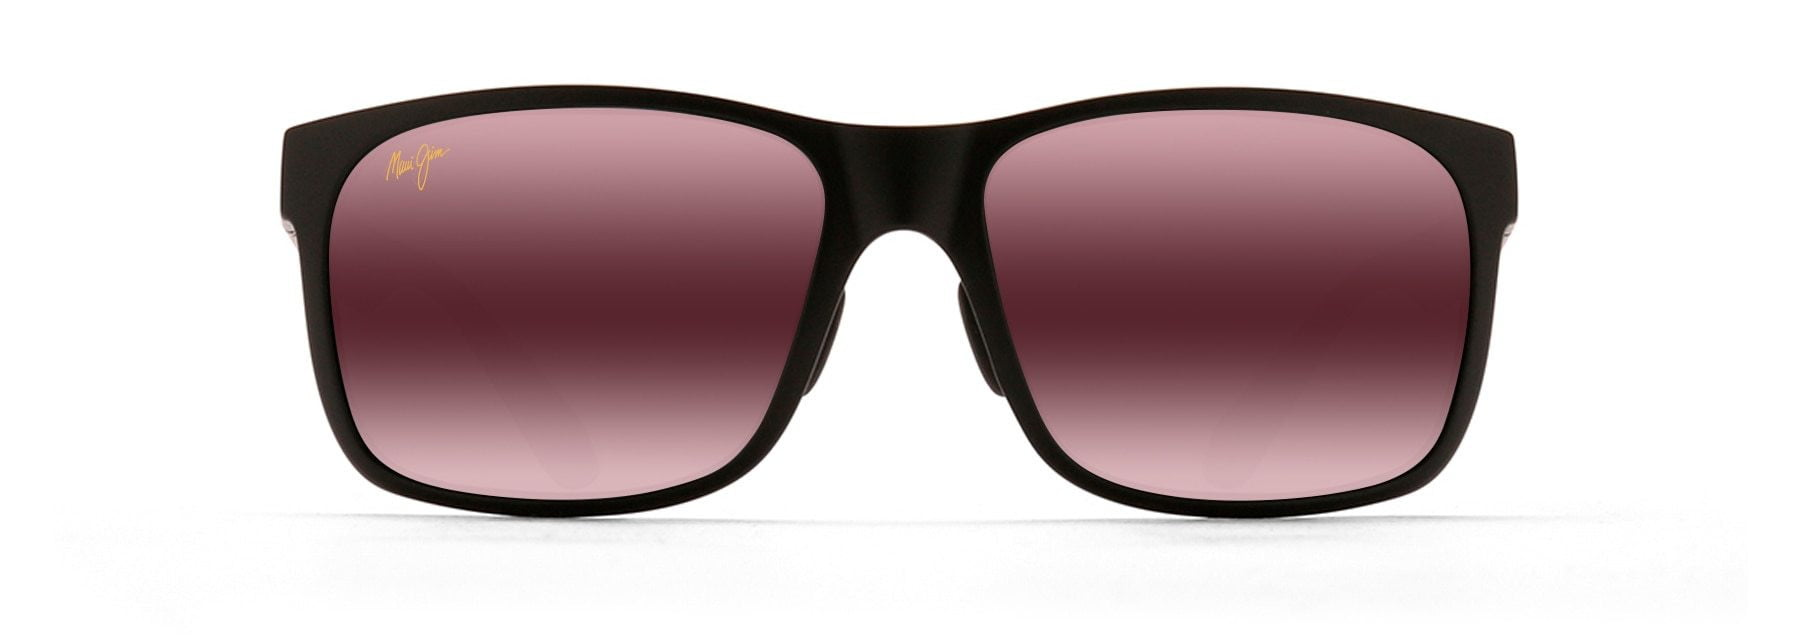 MyMaui Red Sands MM432-028 Sunglasses